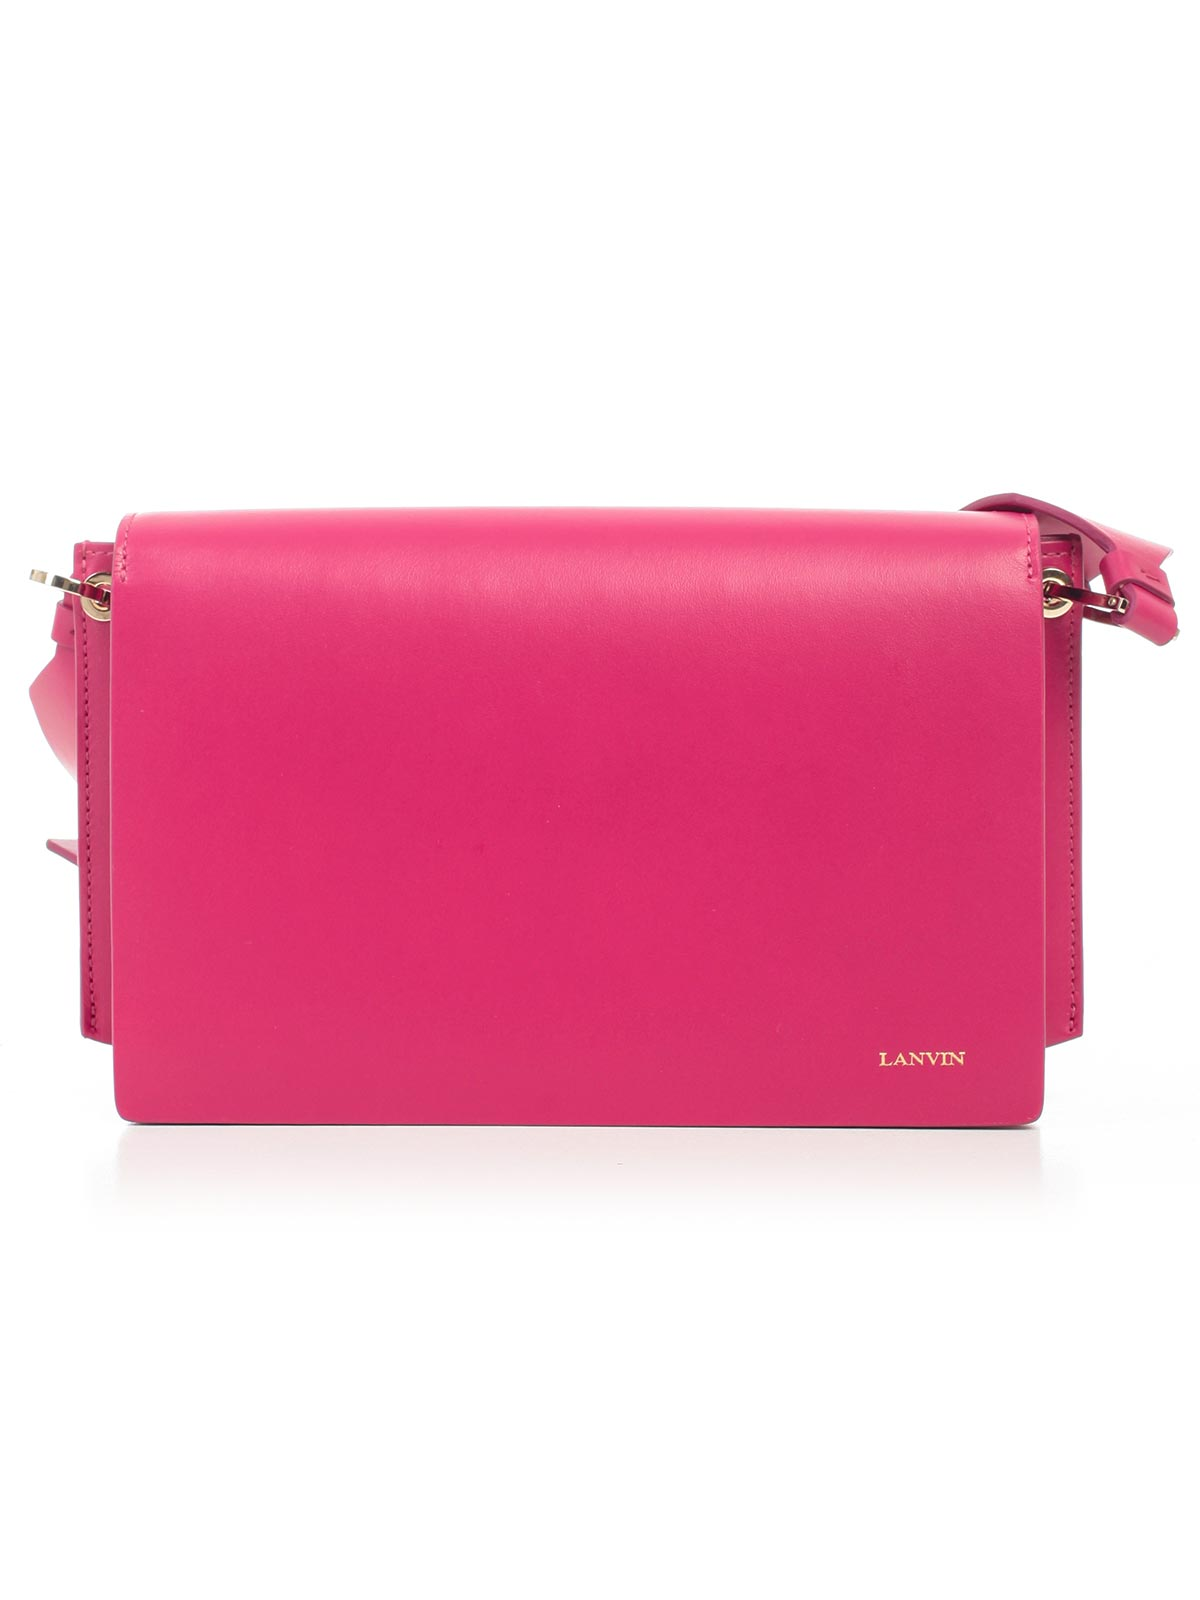 Picture of Lanvin Bags